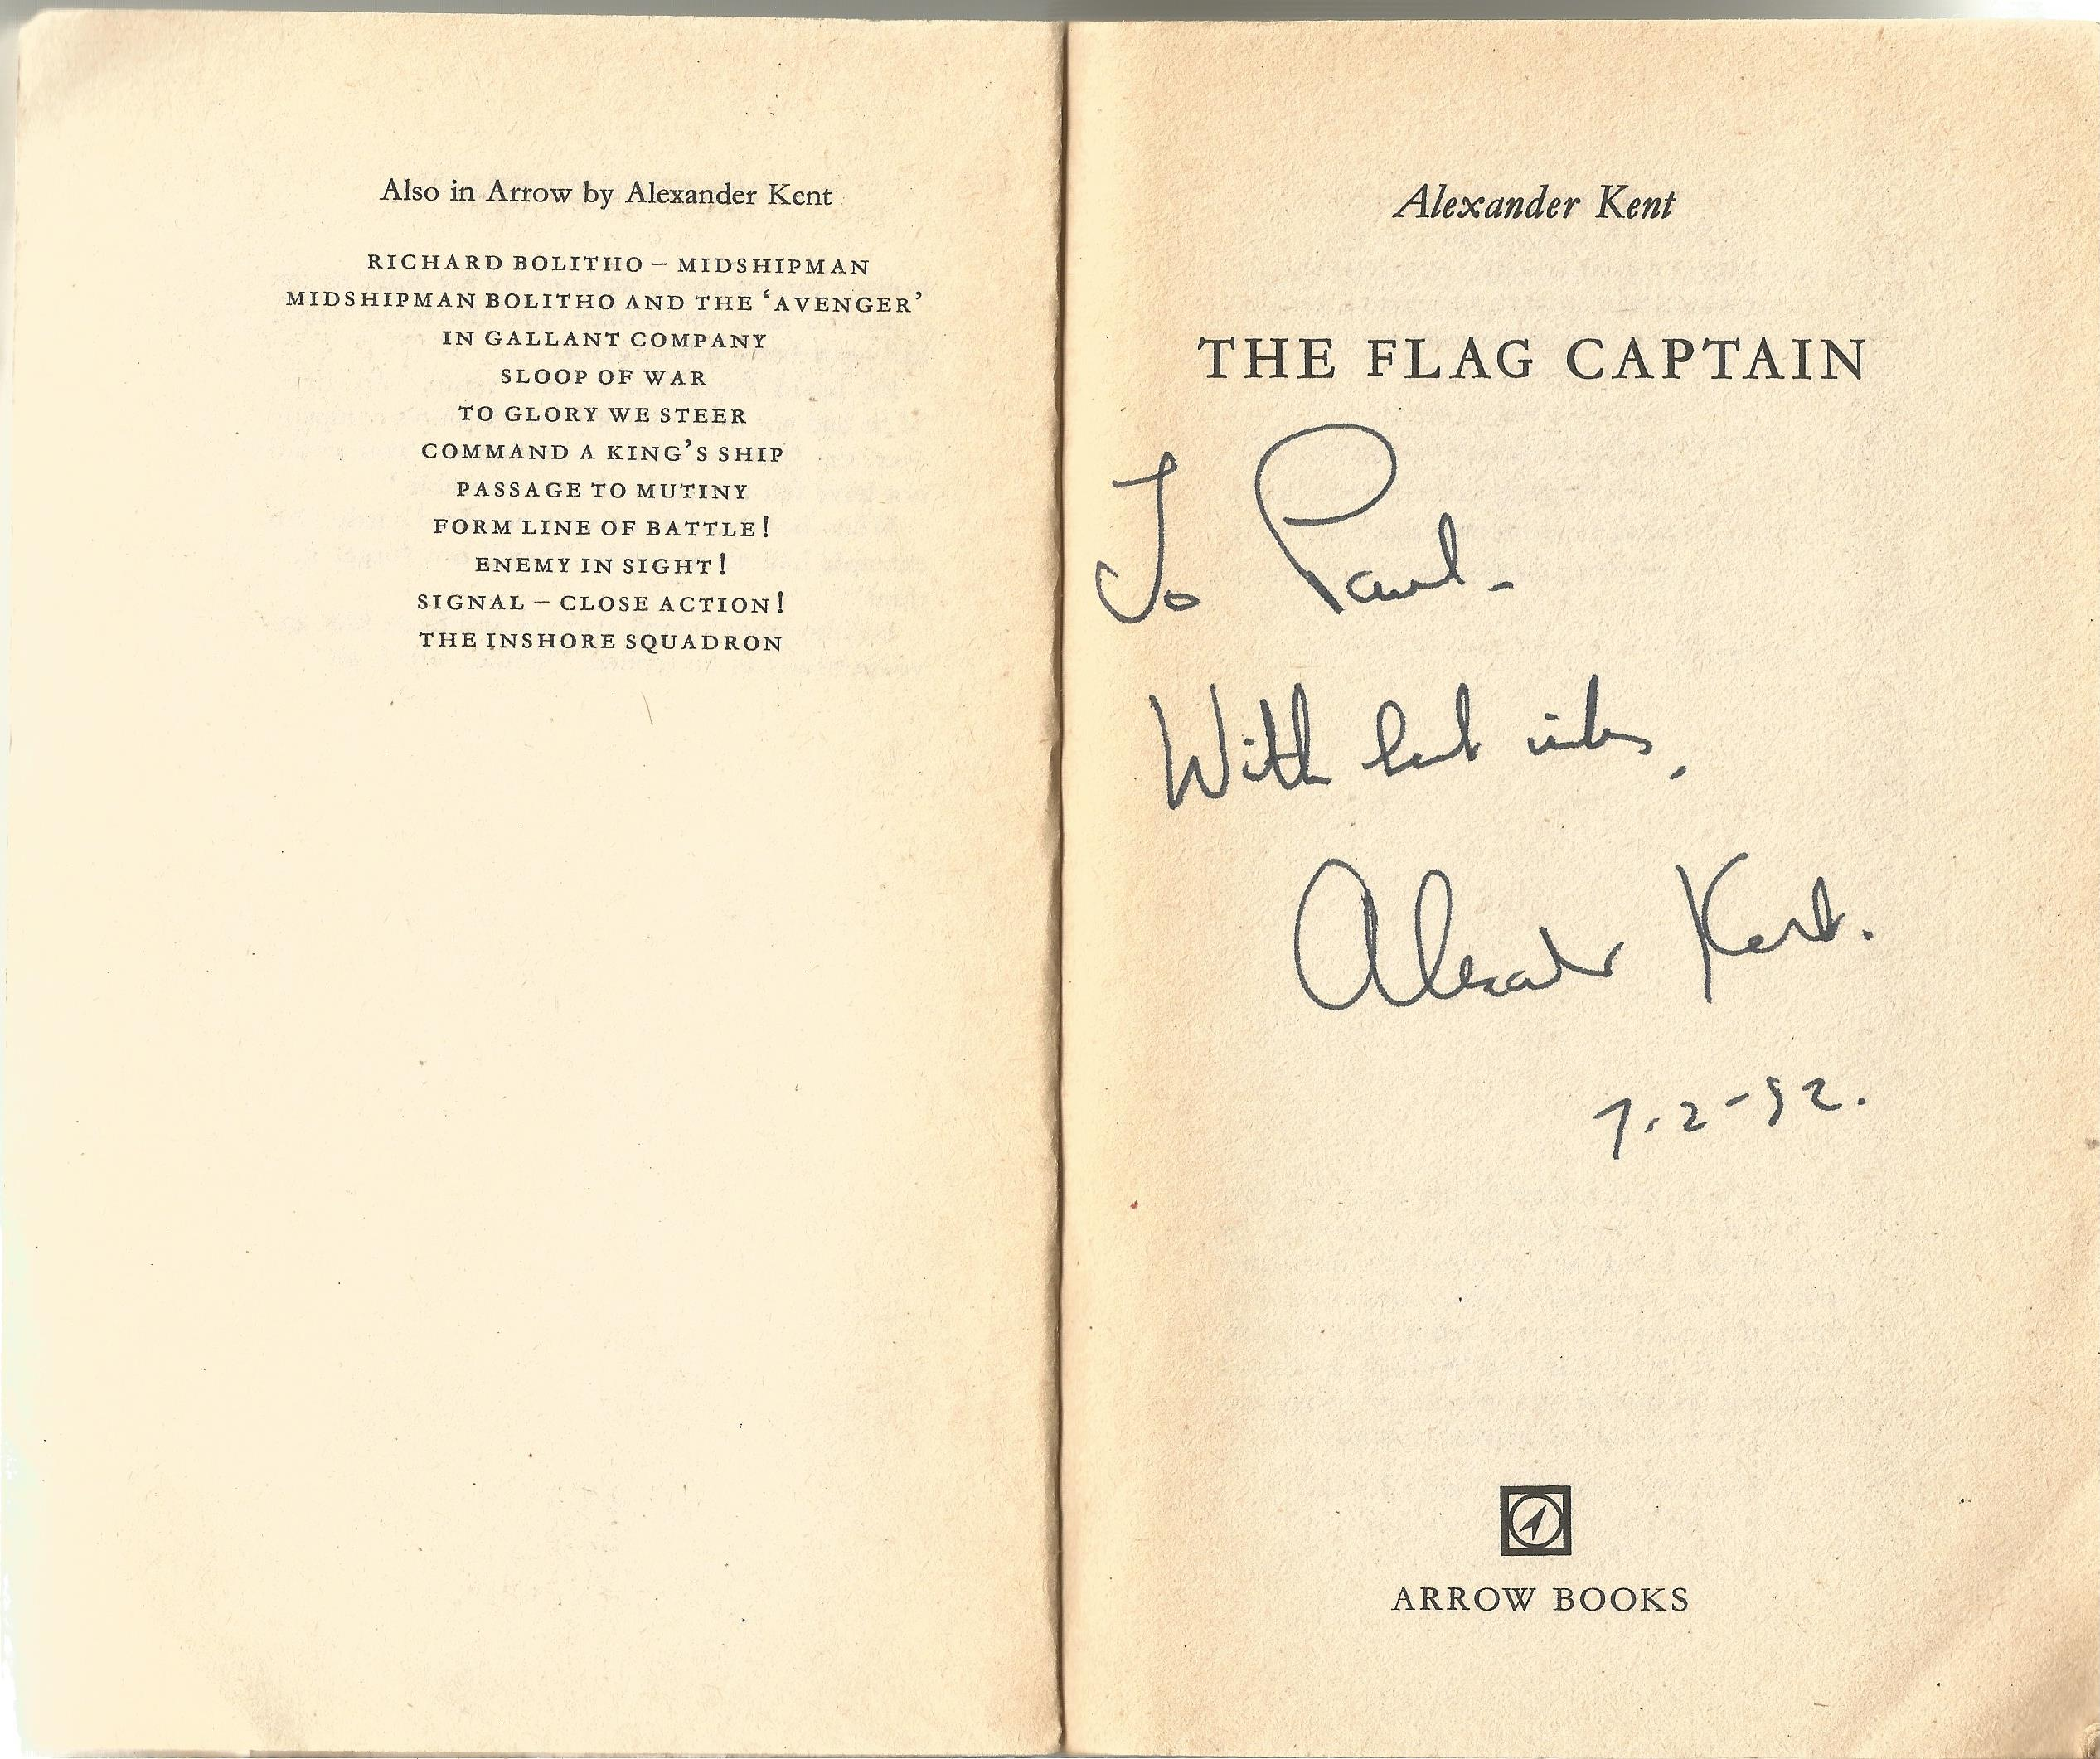 Alexander Kent Paperback Book The Flag Captain signed by the Author on the Title Page some minor - Image 2 of 2